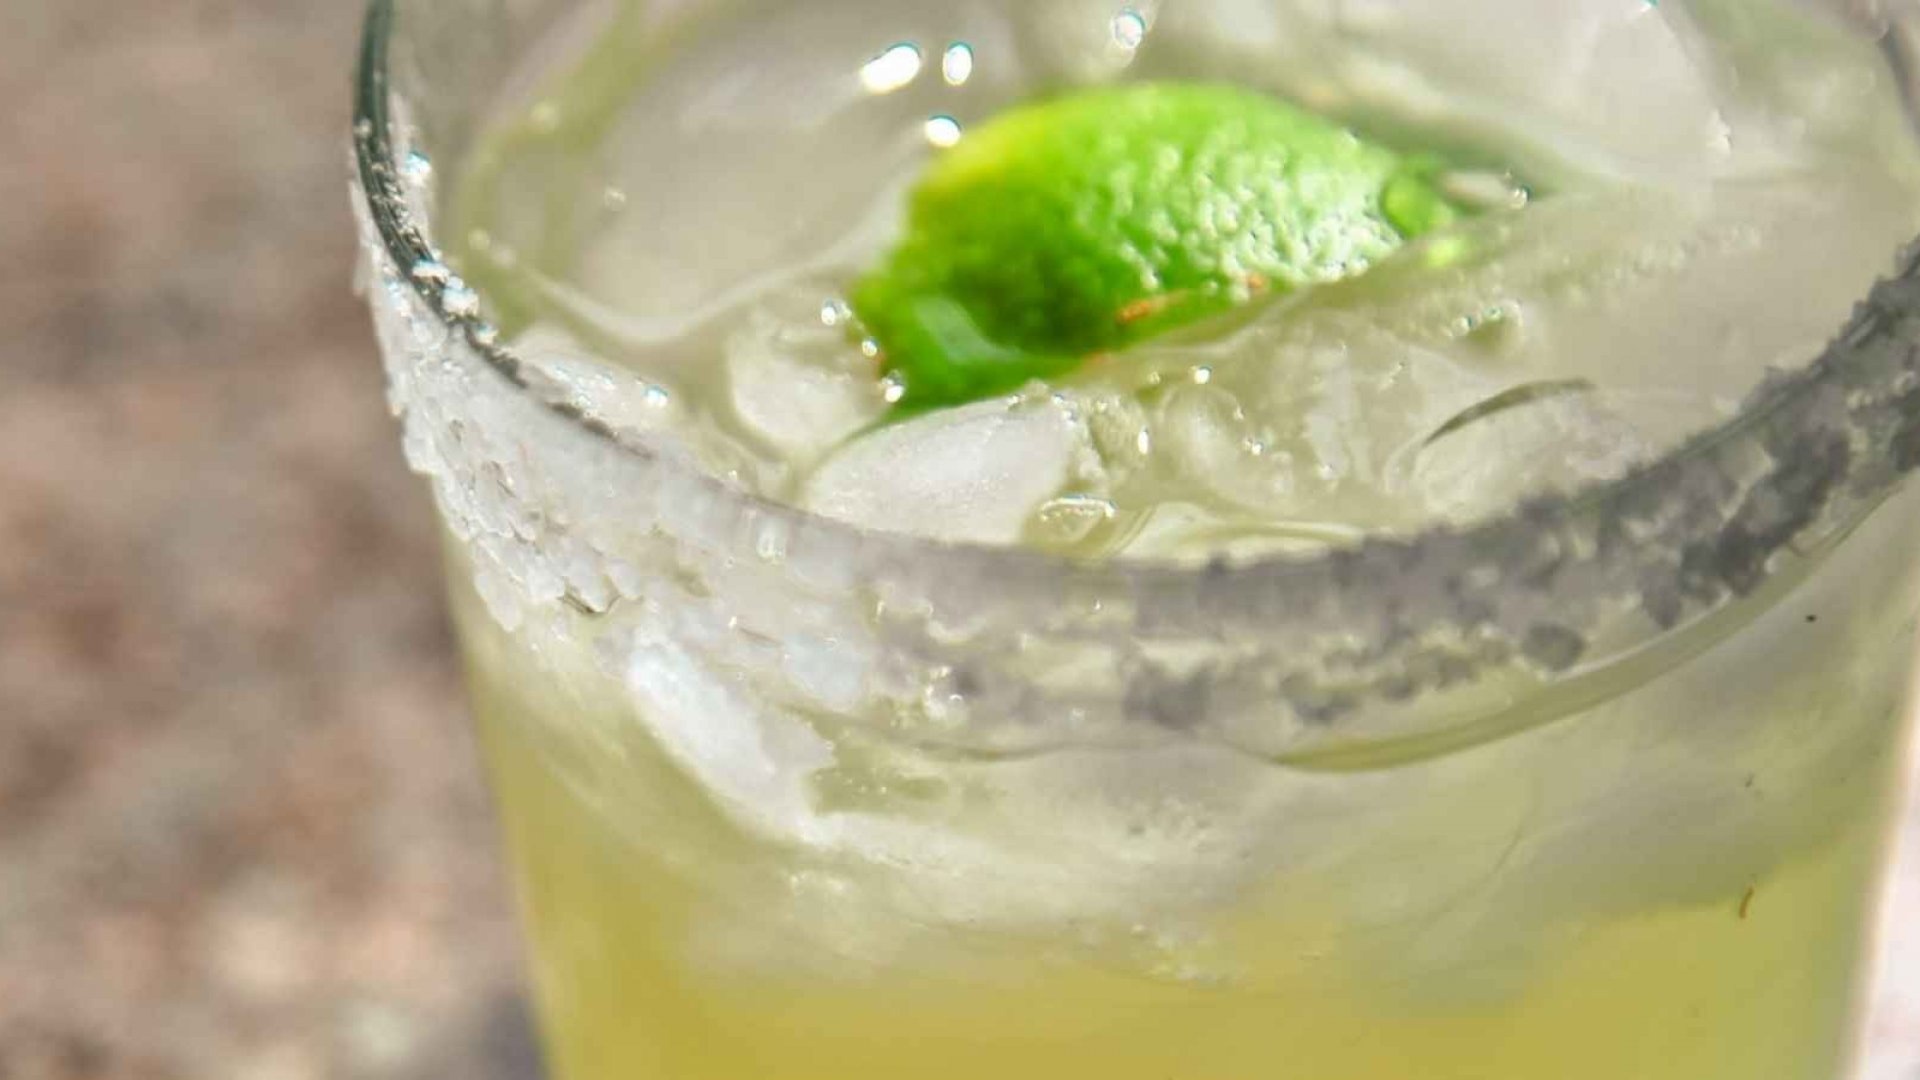 Much More Fun Than Kool-Aid: Powdered Alcohol Has Arrived